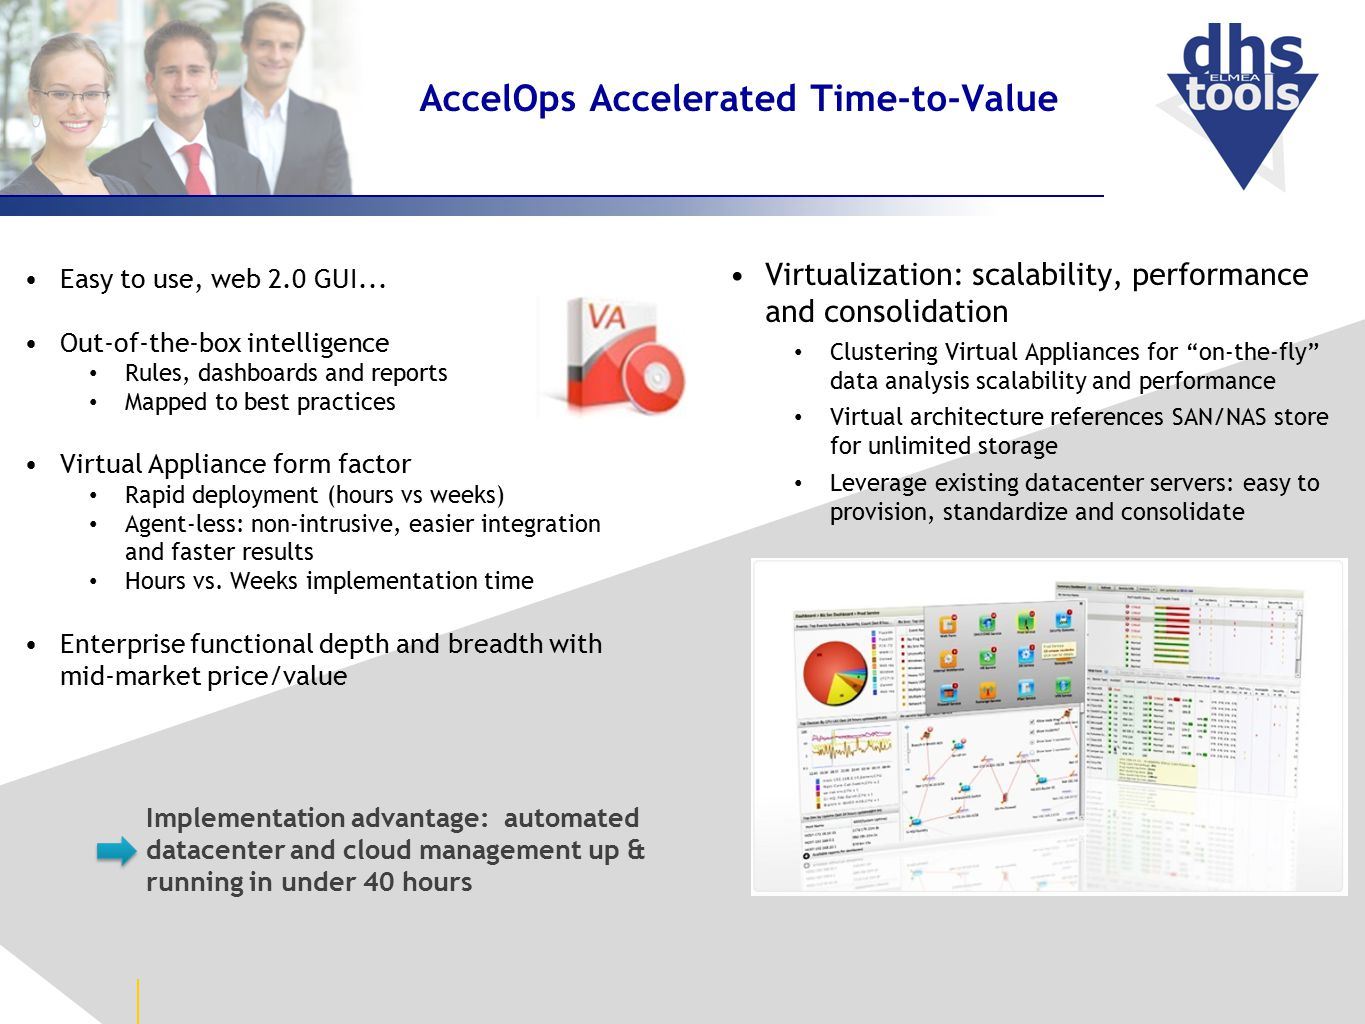 AccelOps Accelerated Time-to-Value Easy to use, web 2.0 GUI...